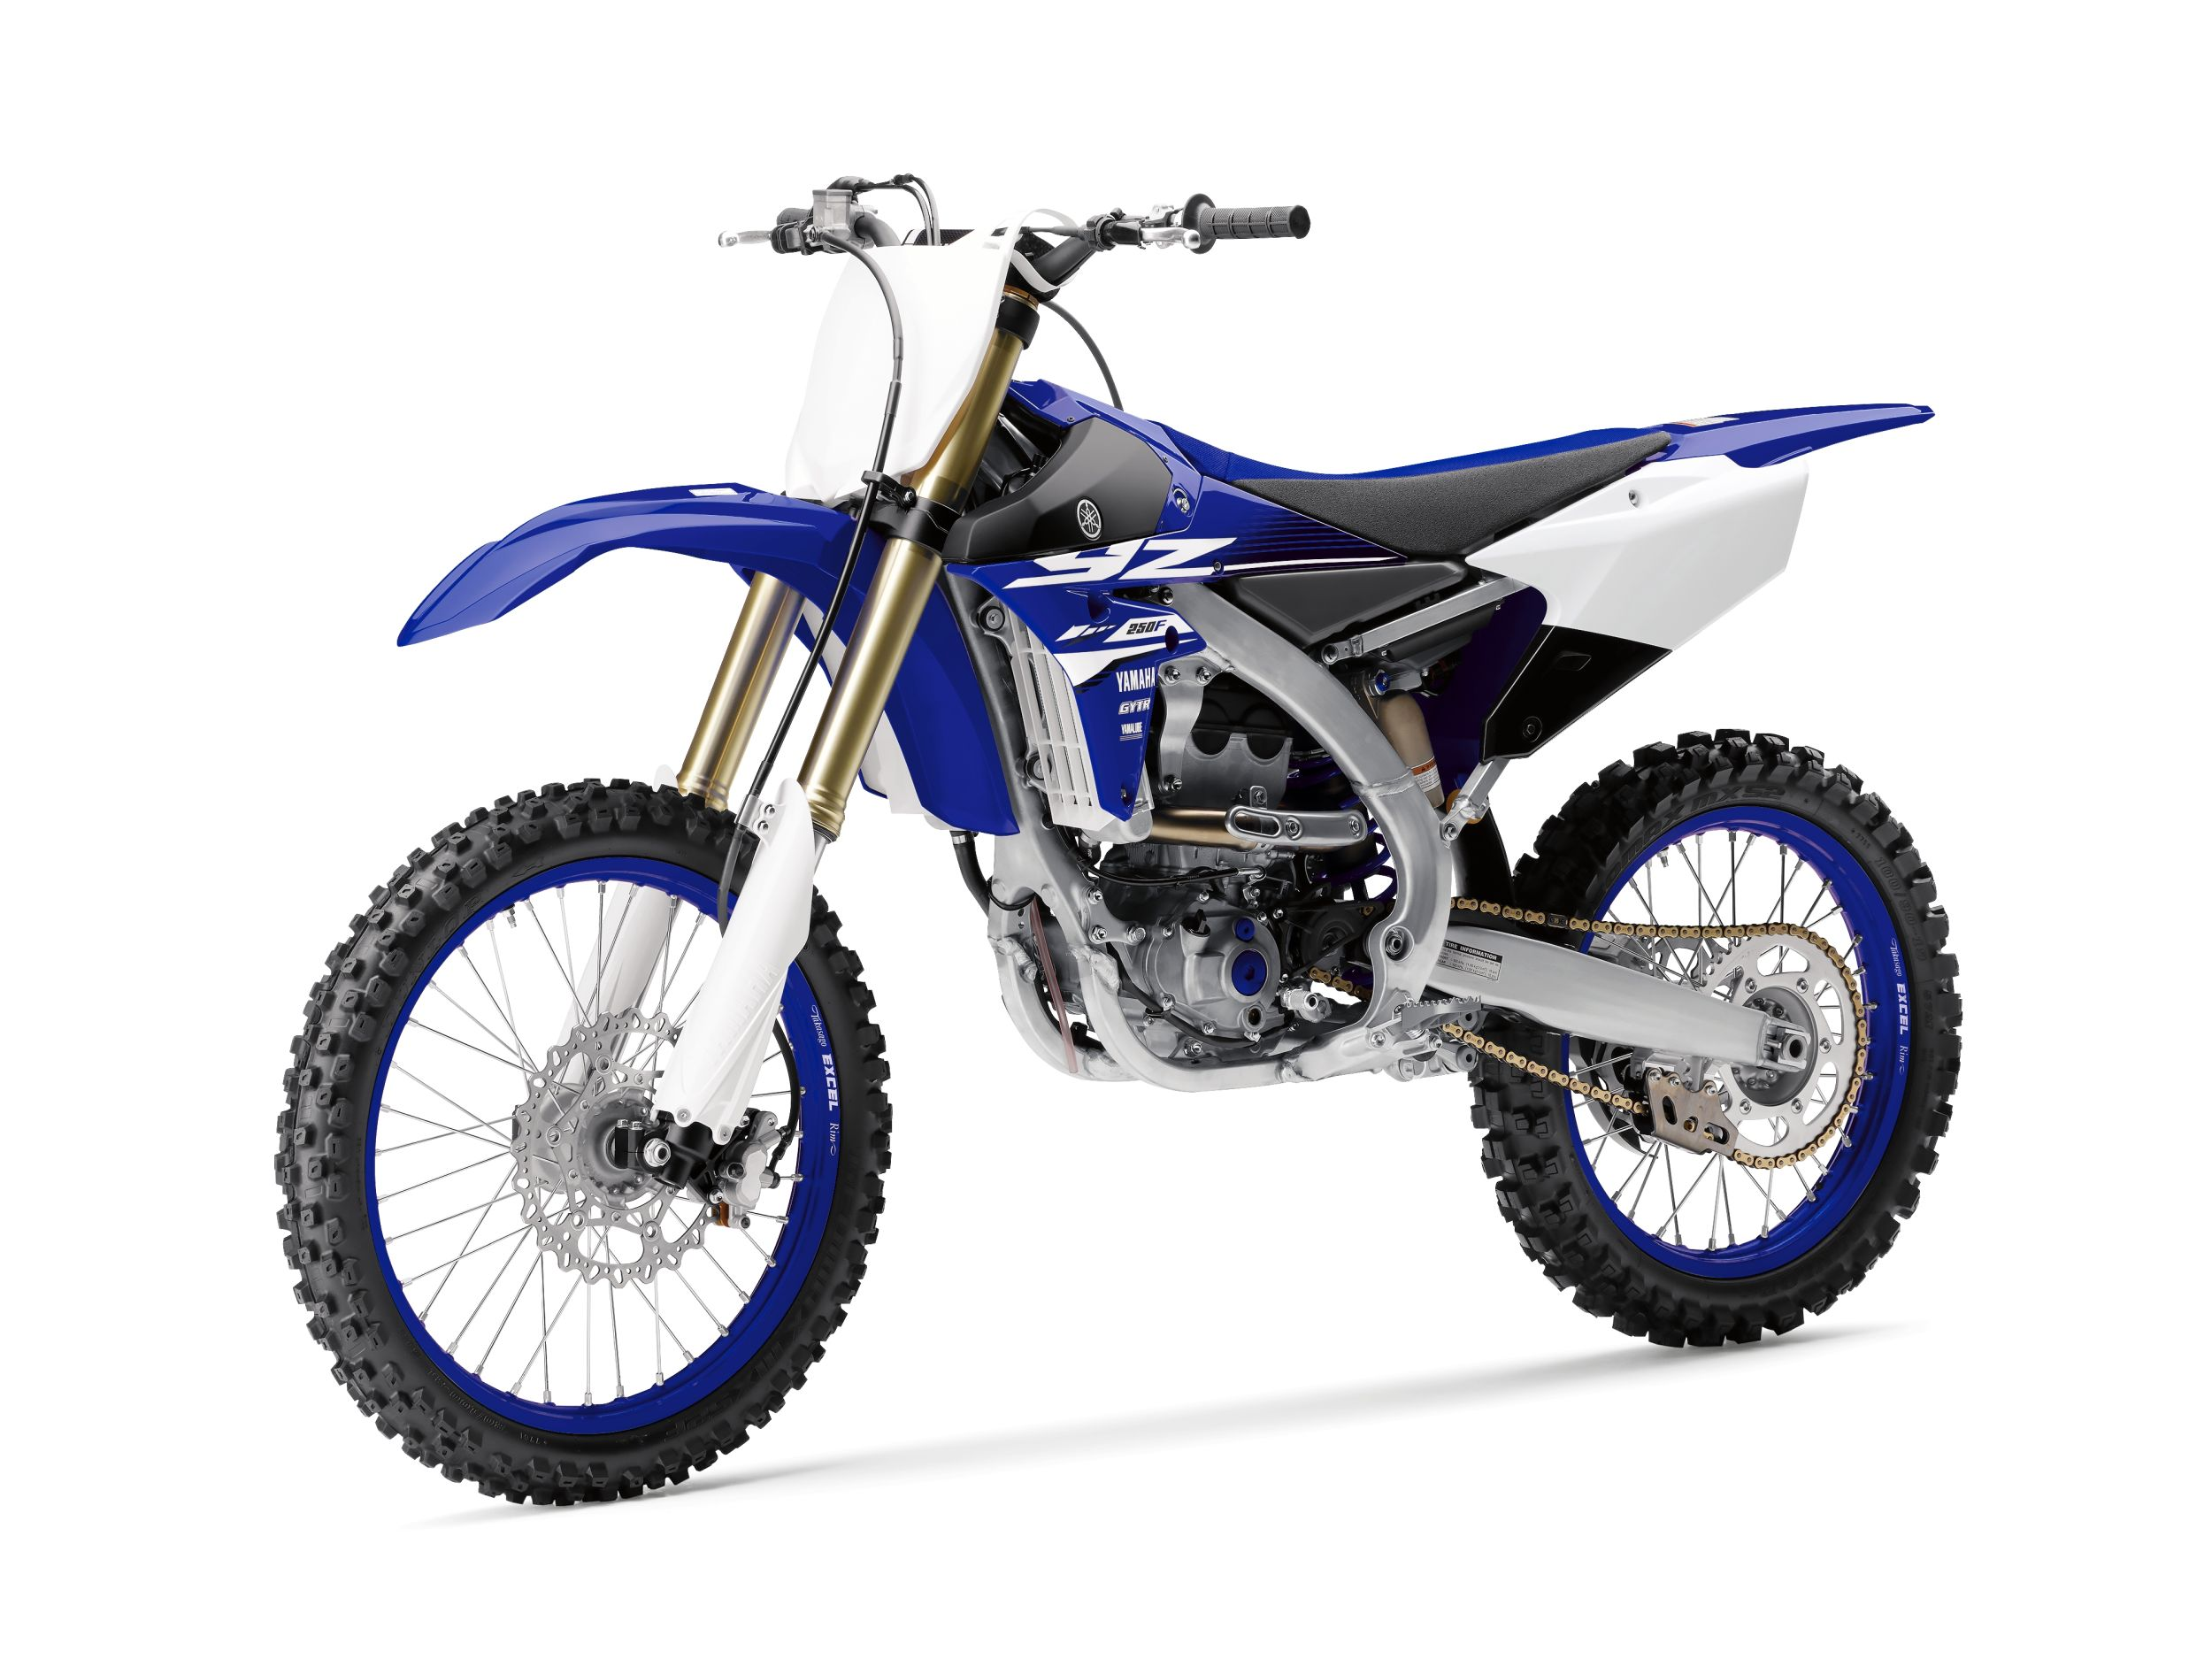 yamaha yz 250f all technical data of the model yz 250f from yamaha. Black Bedroom Furniture Sets. Home Design Ideas